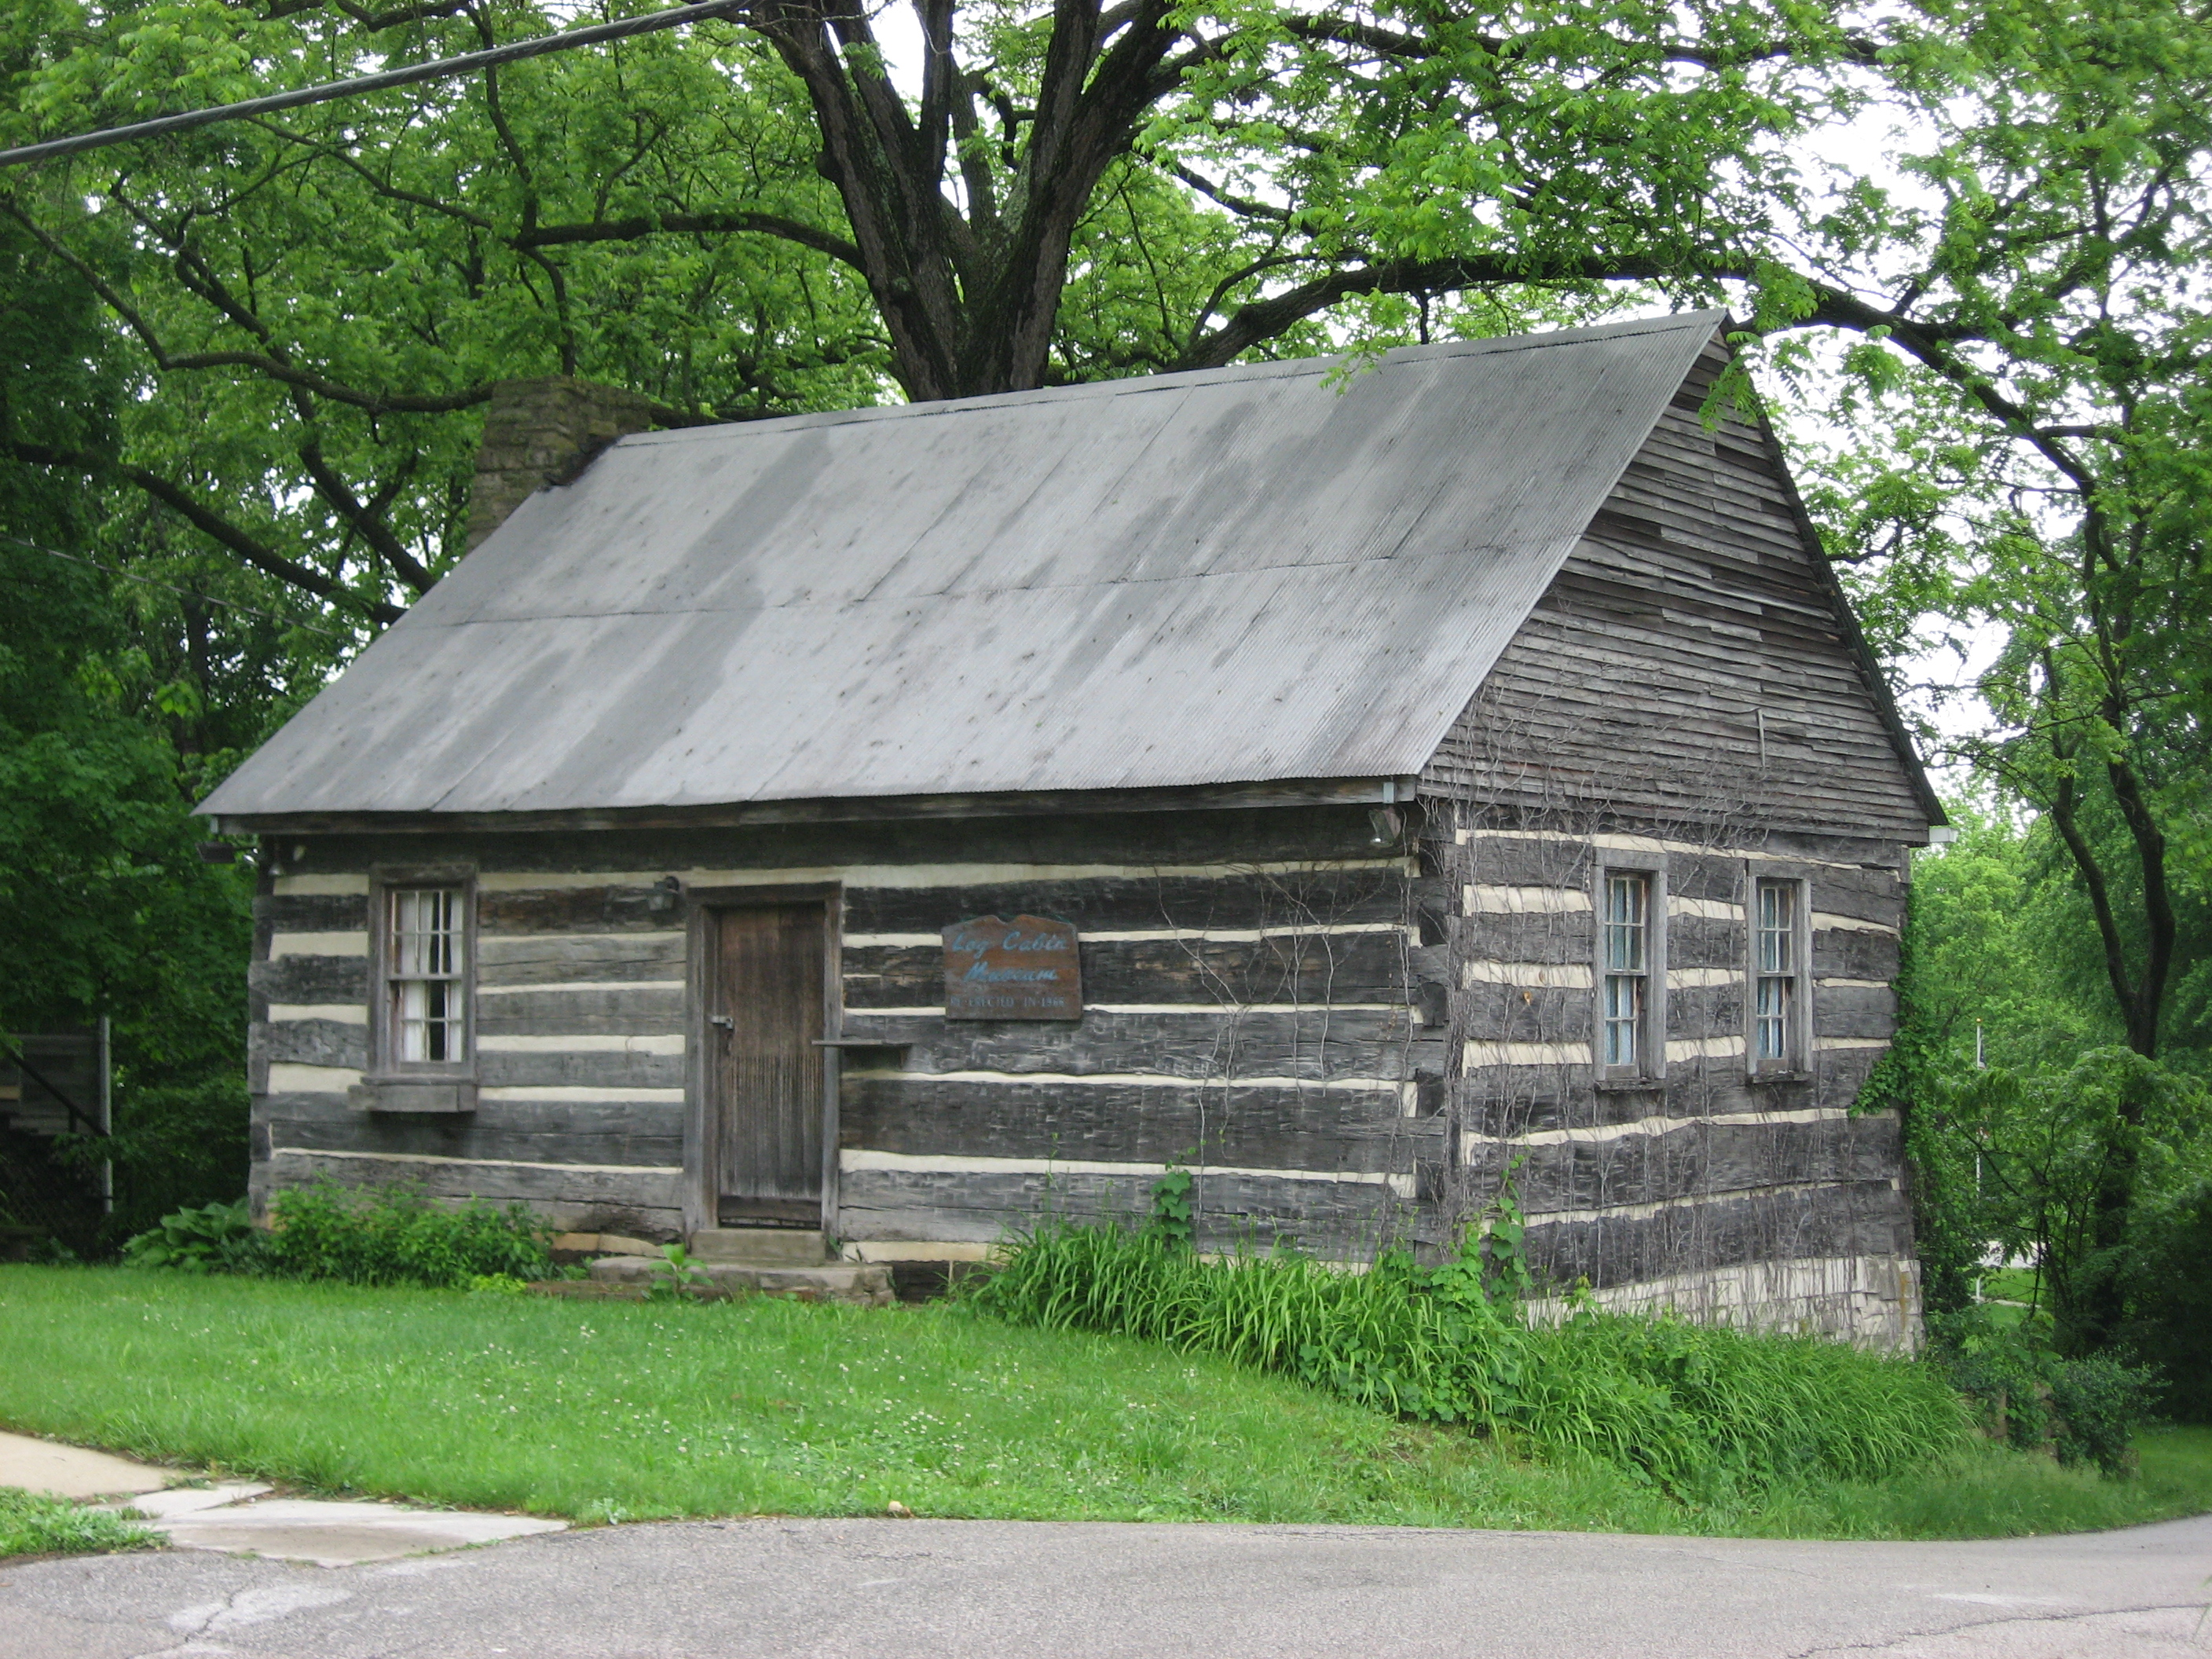 Superb img of Description Log Cabin Museum in Ellettsville.jpg with #608D3E color and 2816x2112 pixels